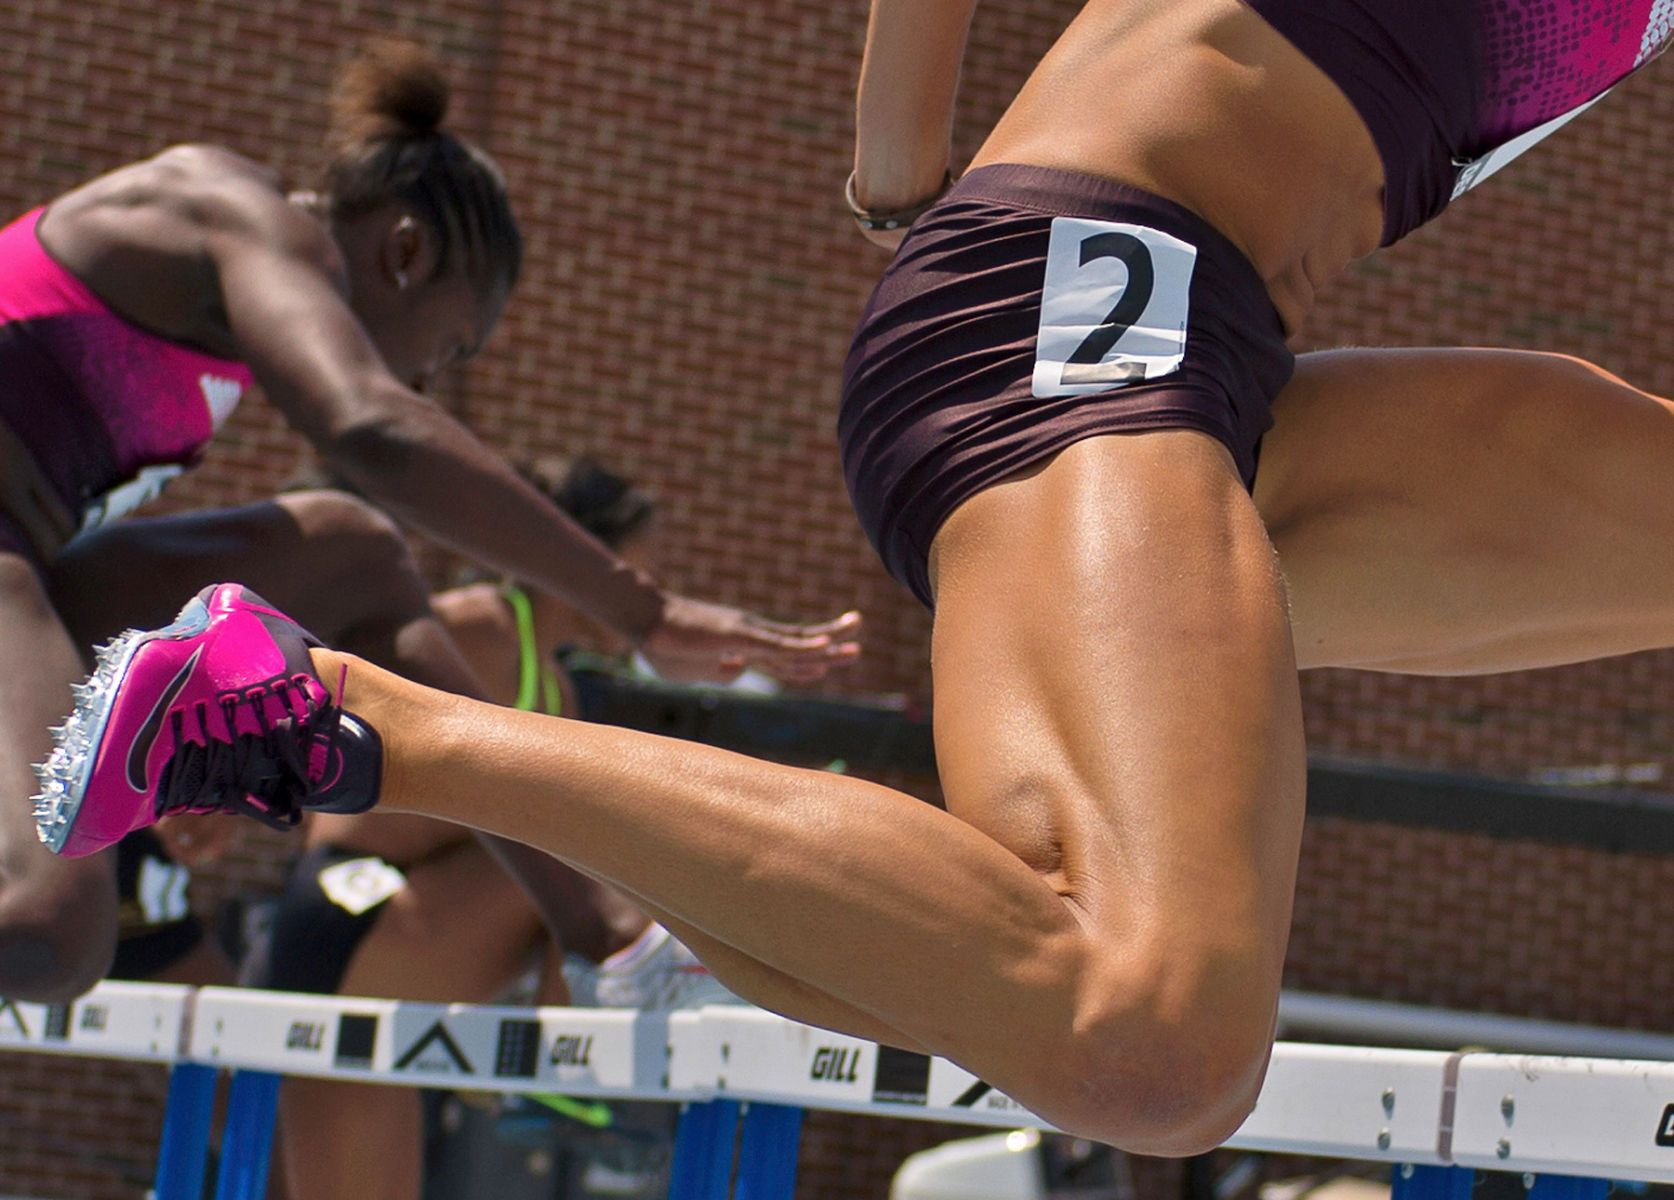 1usaoutdoors2013_ryann_krais_heptathlon_track_and_field_image_jeff_cohen_photography_lb.jpg